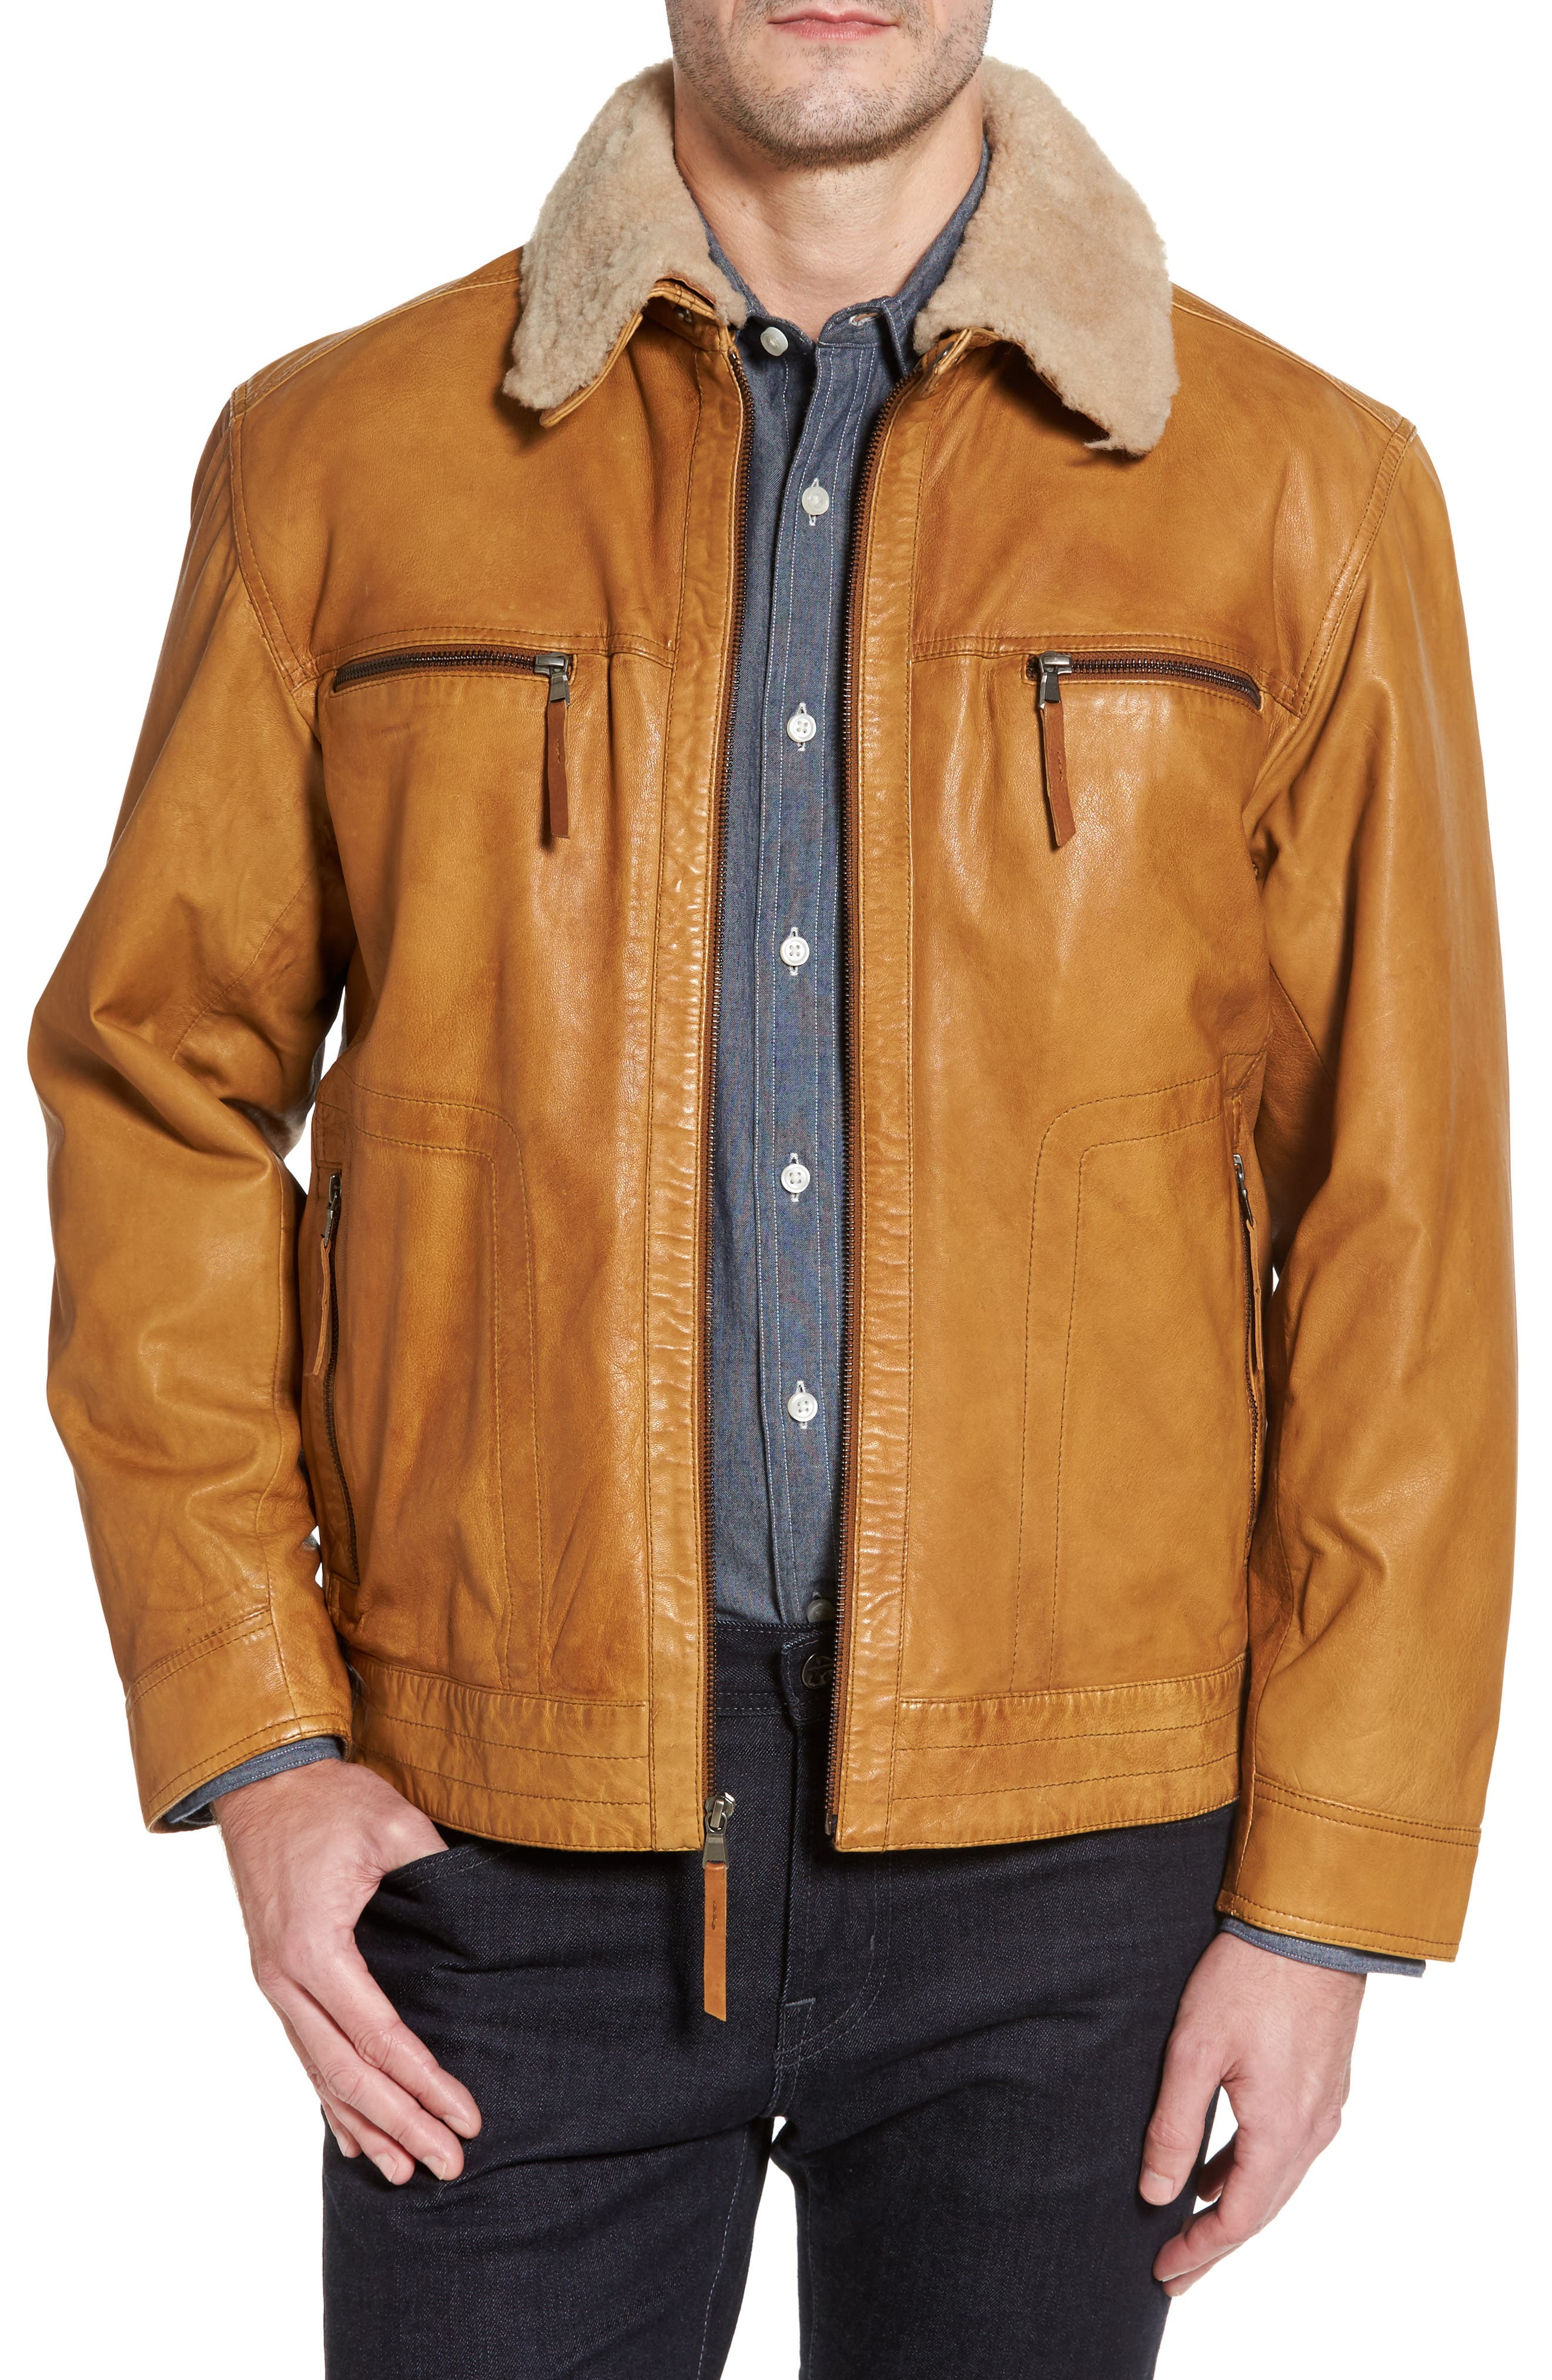 Main Image - Missani Le Collezioni Leather Jacket with Detachable Genuine Shearling Collar